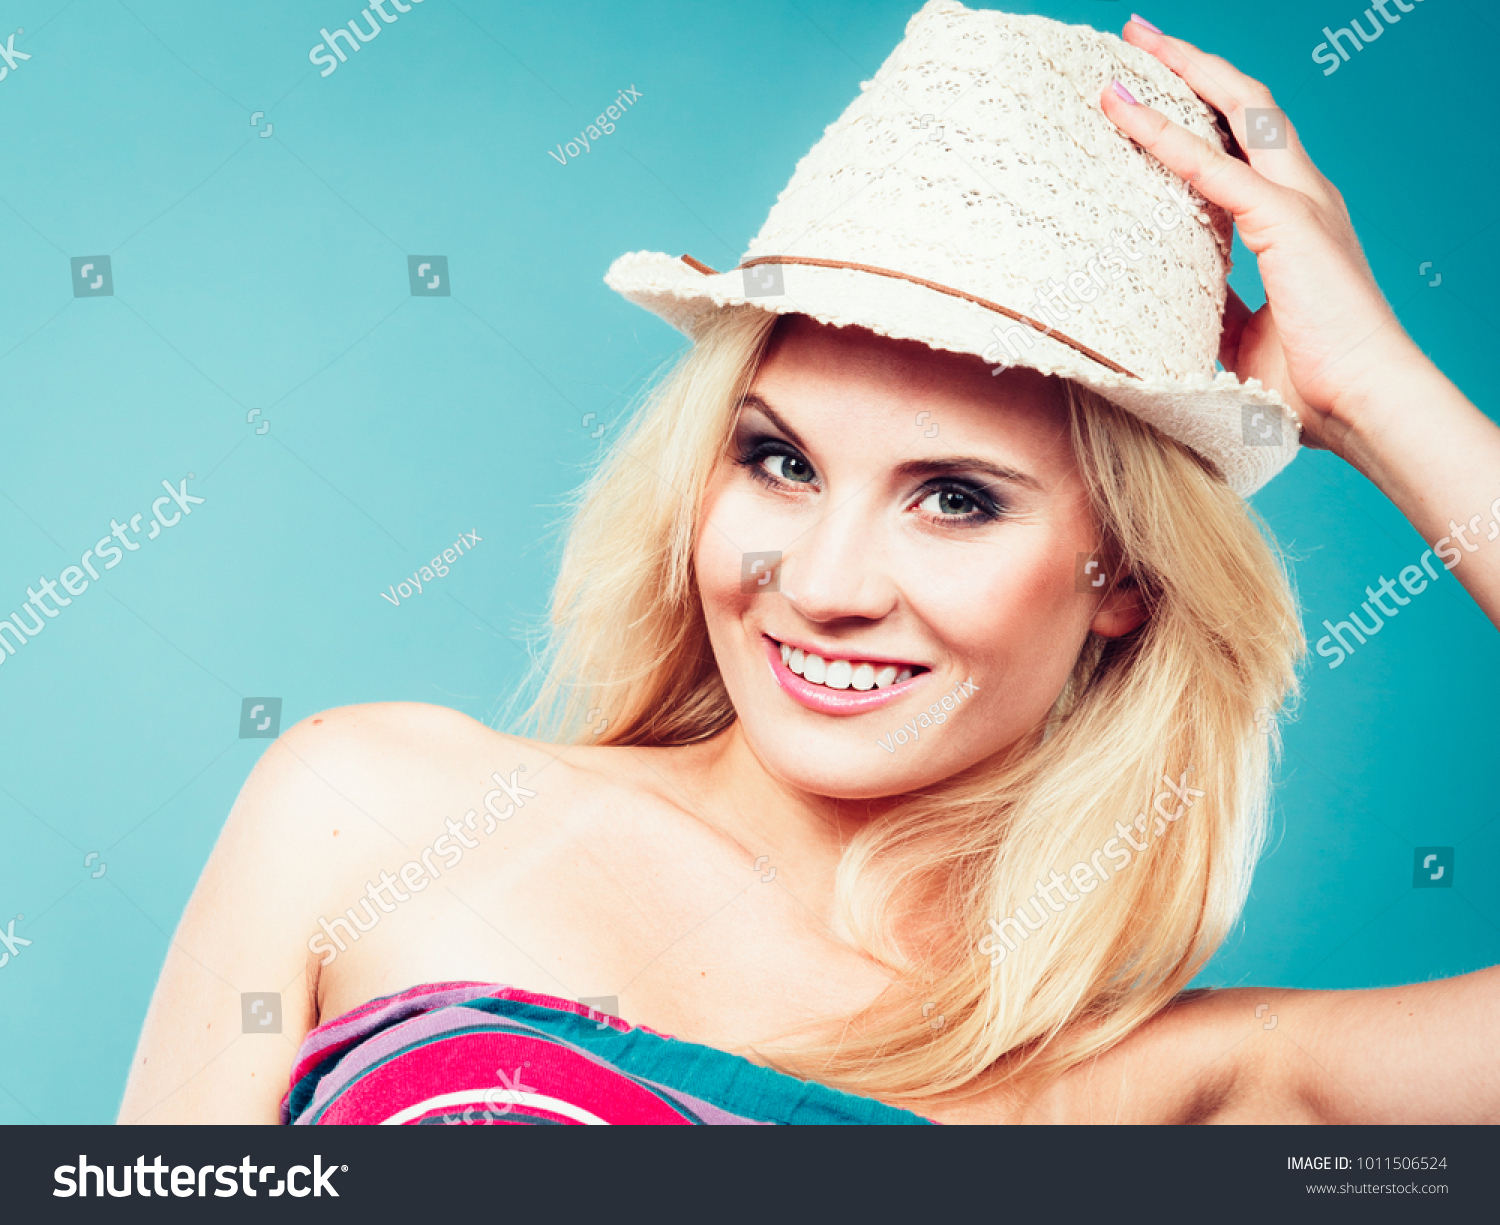 Summer Trendy Fashionable Outfit Ideas Concept Stock Photo Edit